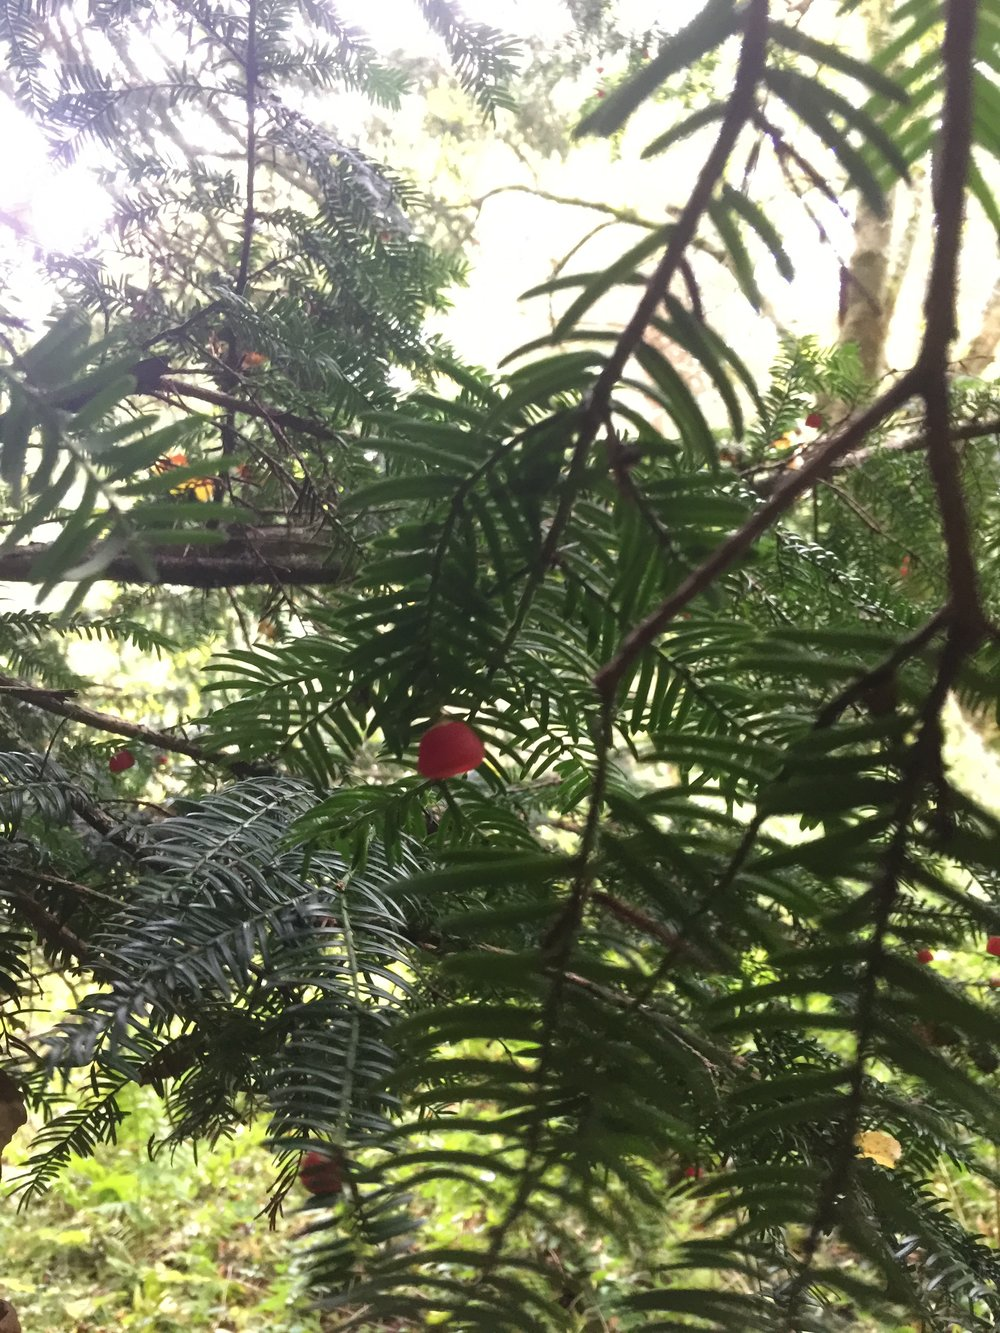 Yew Tree Branches and Fruit, Roslin Glen 2017